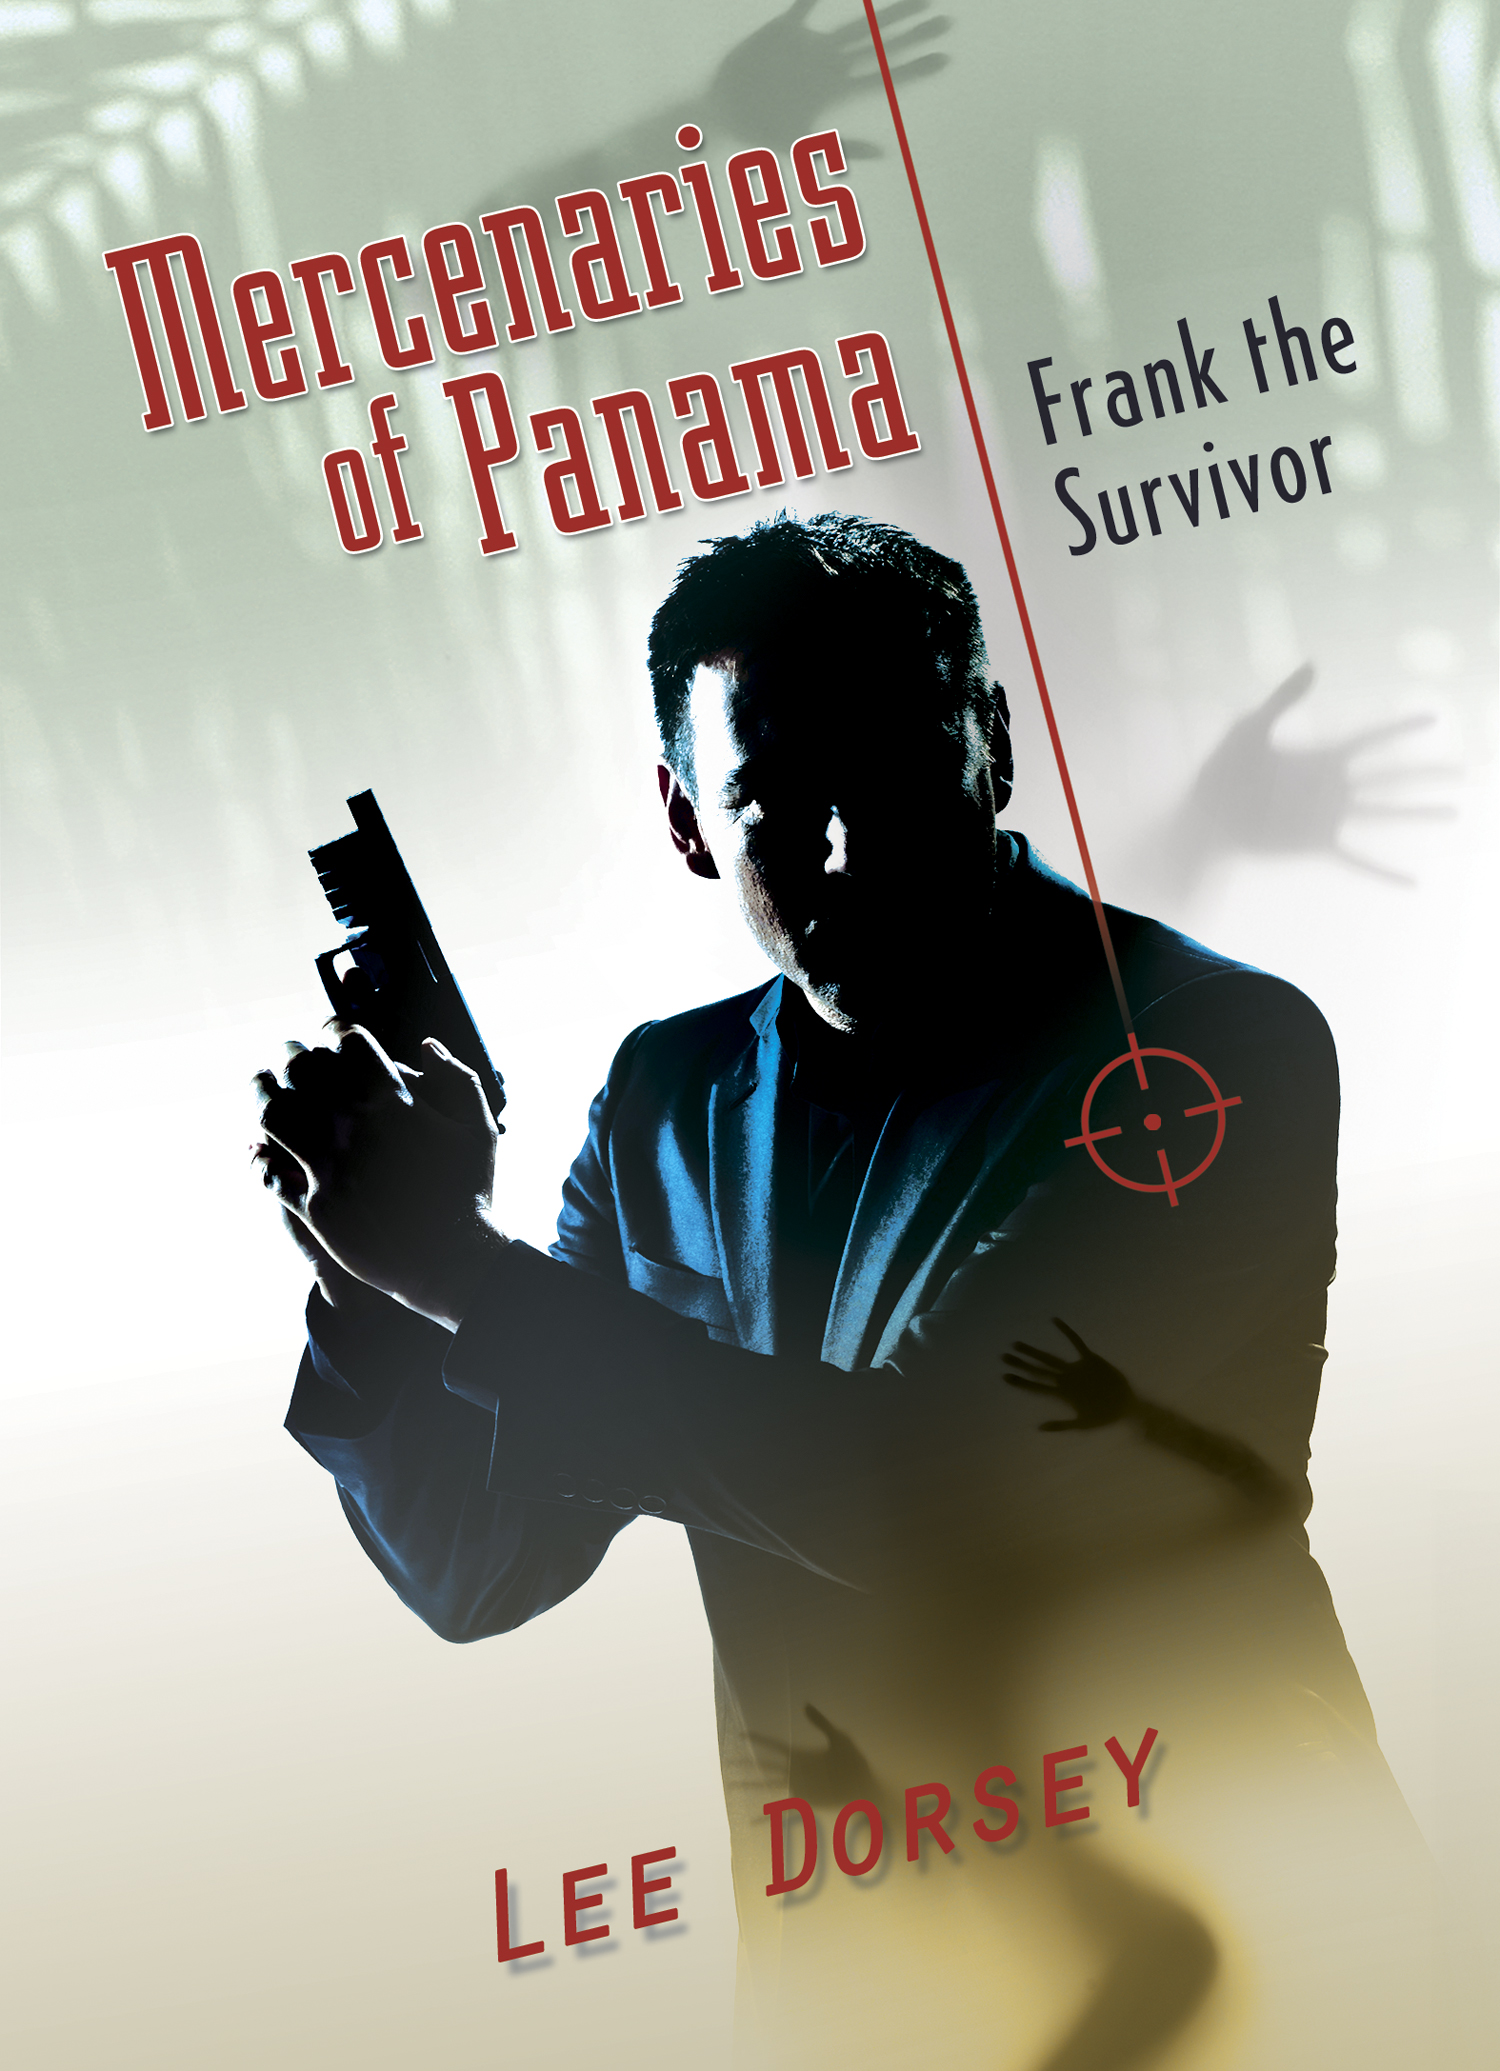 Mercenaries of Panama—Frank the Survivor